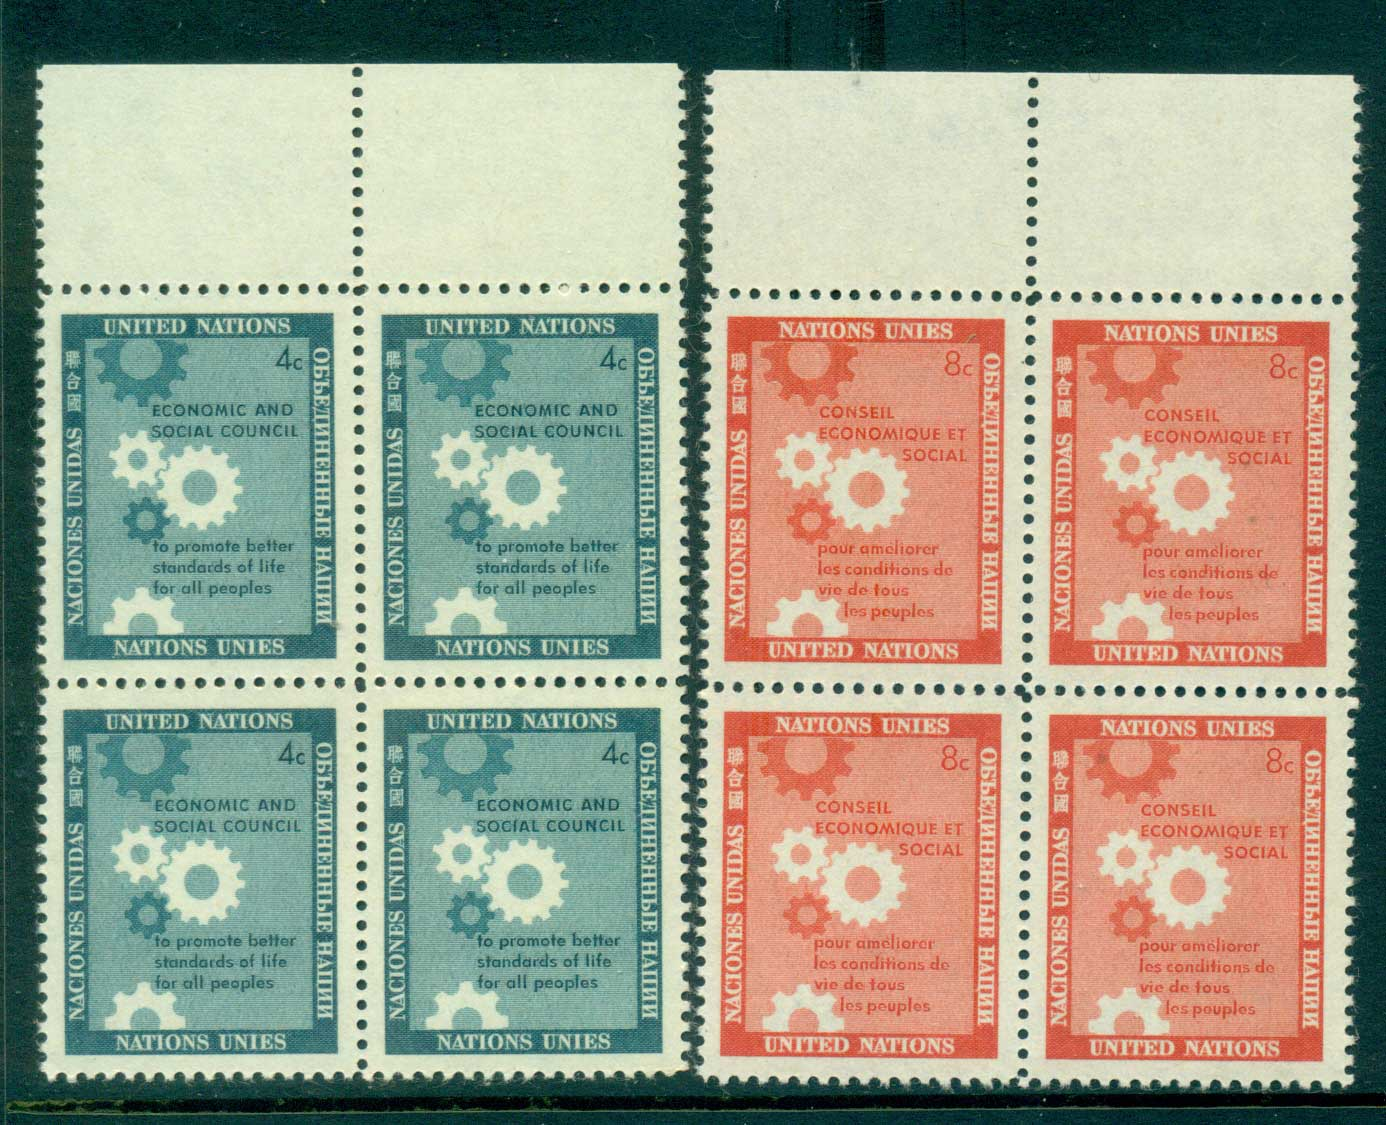 UN New York 1957 Honouring the Economic & Social Council Blk 4 MUH lot40904